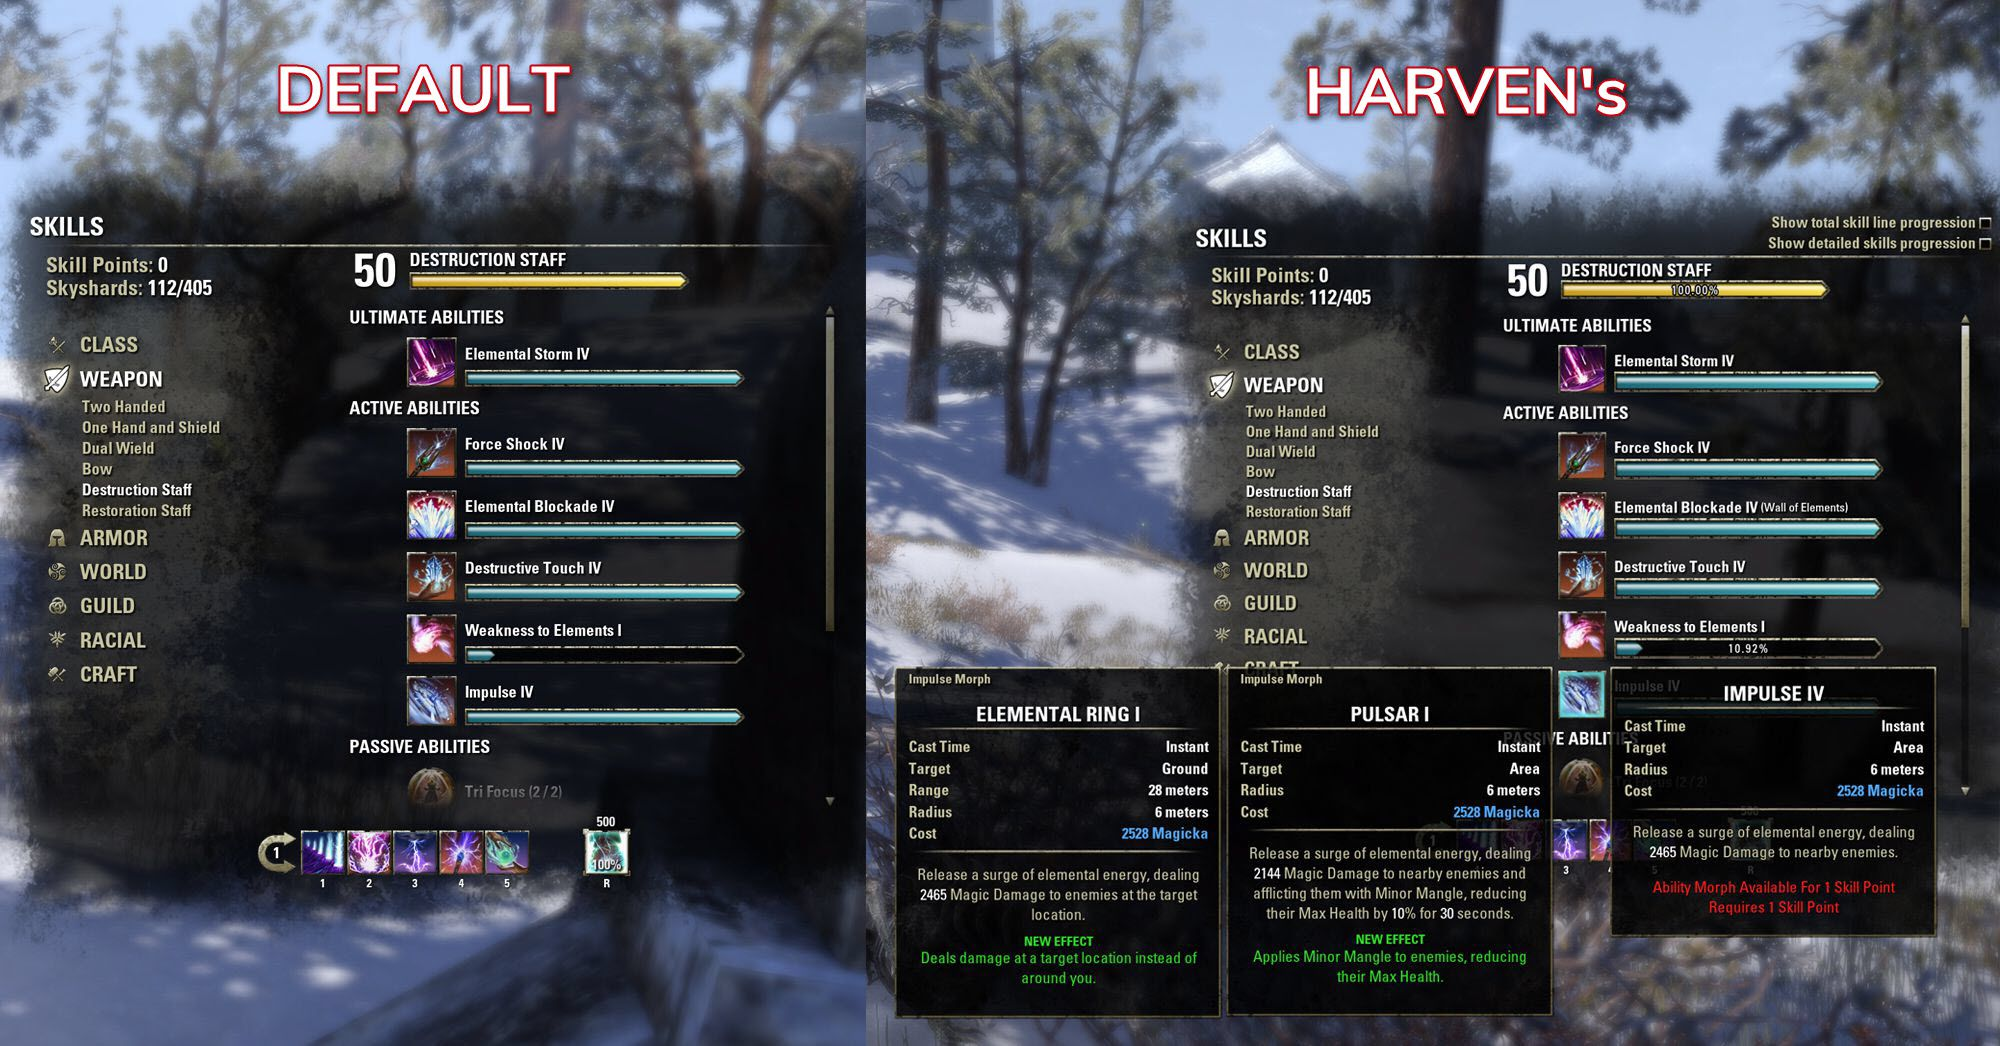 Harven's Improved Skills Window by Harven, The Elder Scrolls Online Addon (image by @serpentaa)